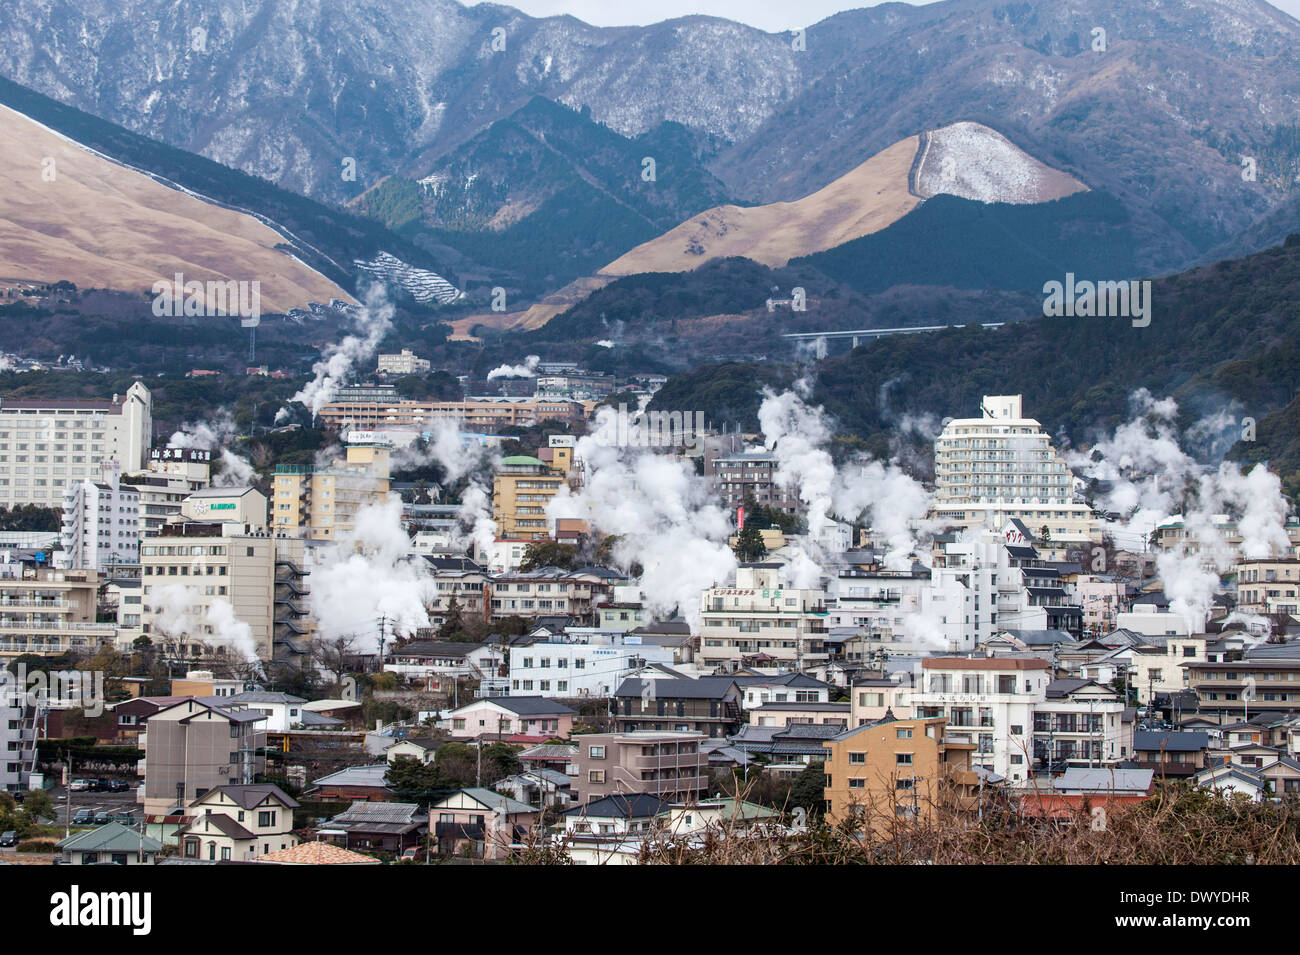 Steam Rising from Hot Spring Sources in the Town of Yufuin, Yufu, Oita Prefecture, Japan - Stock Image